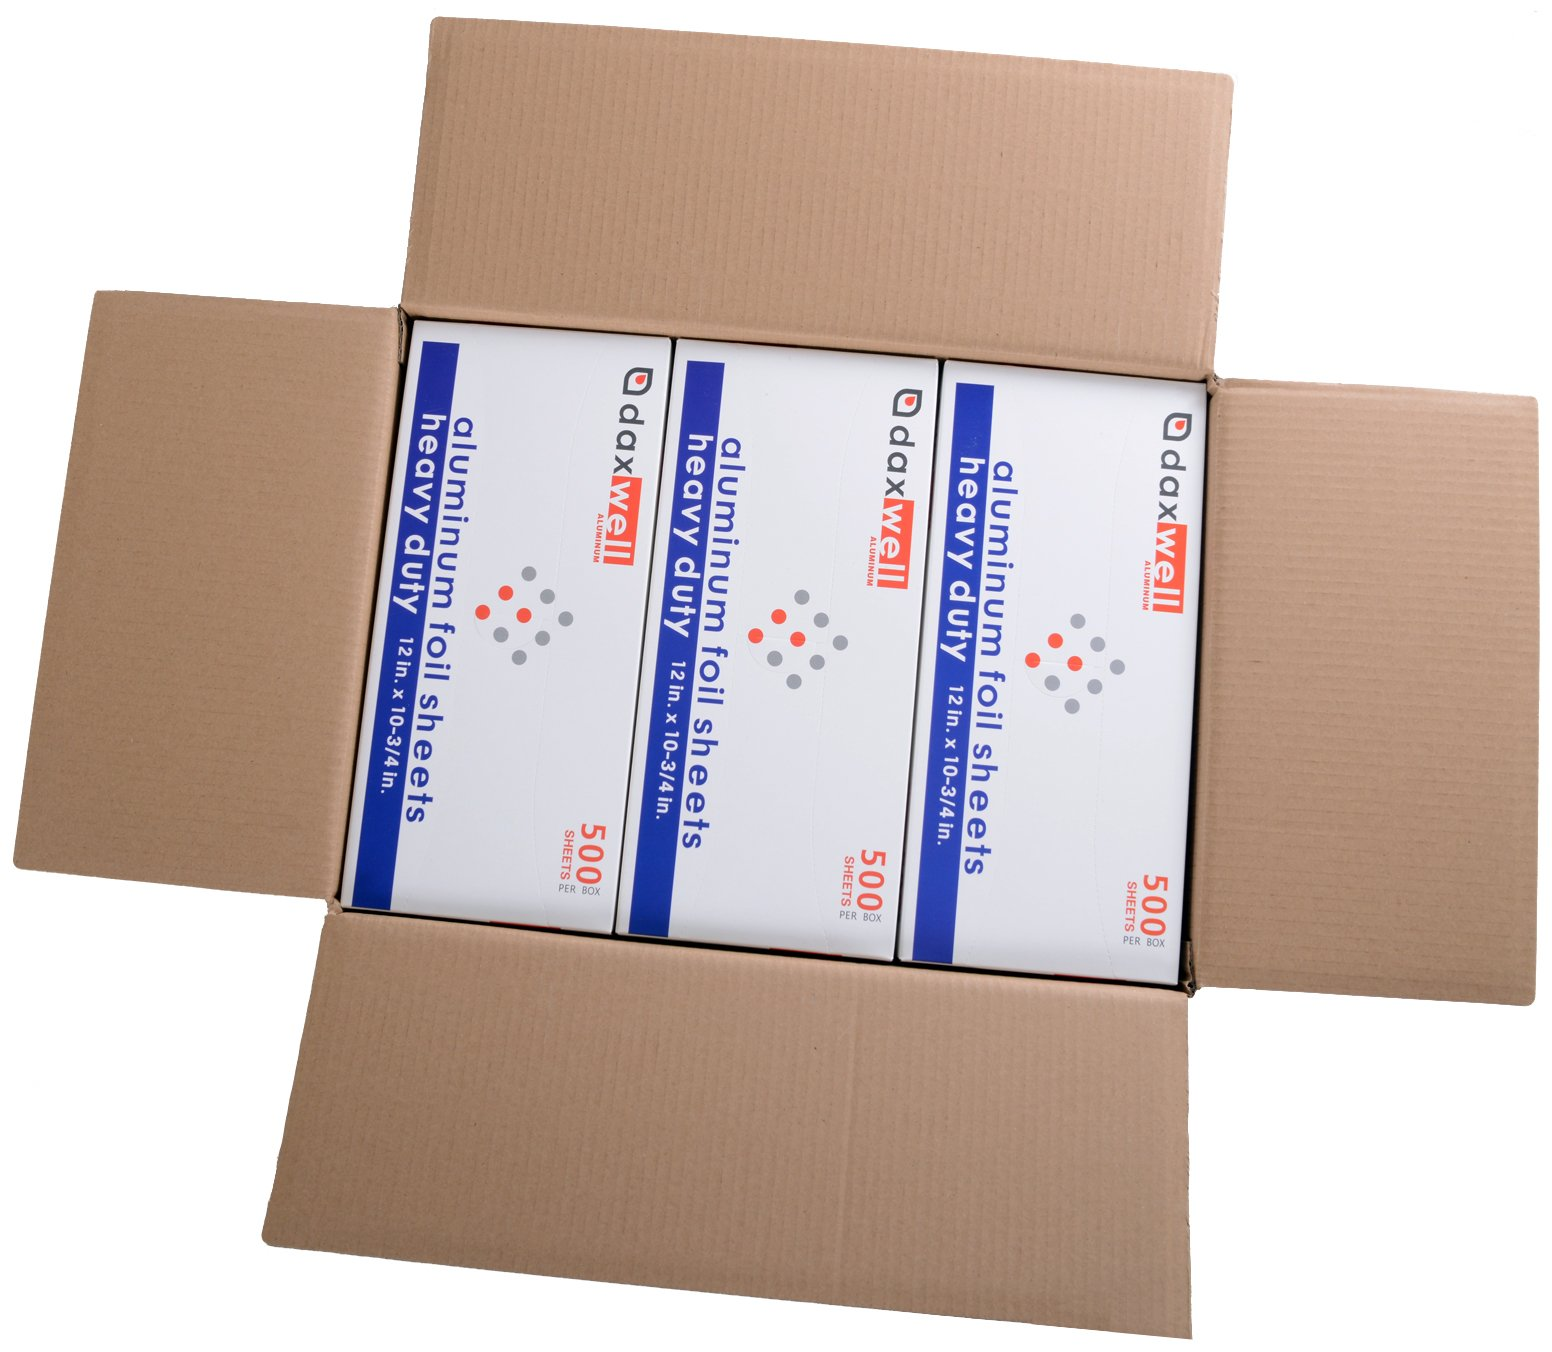 Daxwell Aluminum Heavy Duty Foil Interfolded Pop-Up Sheets, 12'' x 10-3/4'' (6 Boxes of 500 Sheets)